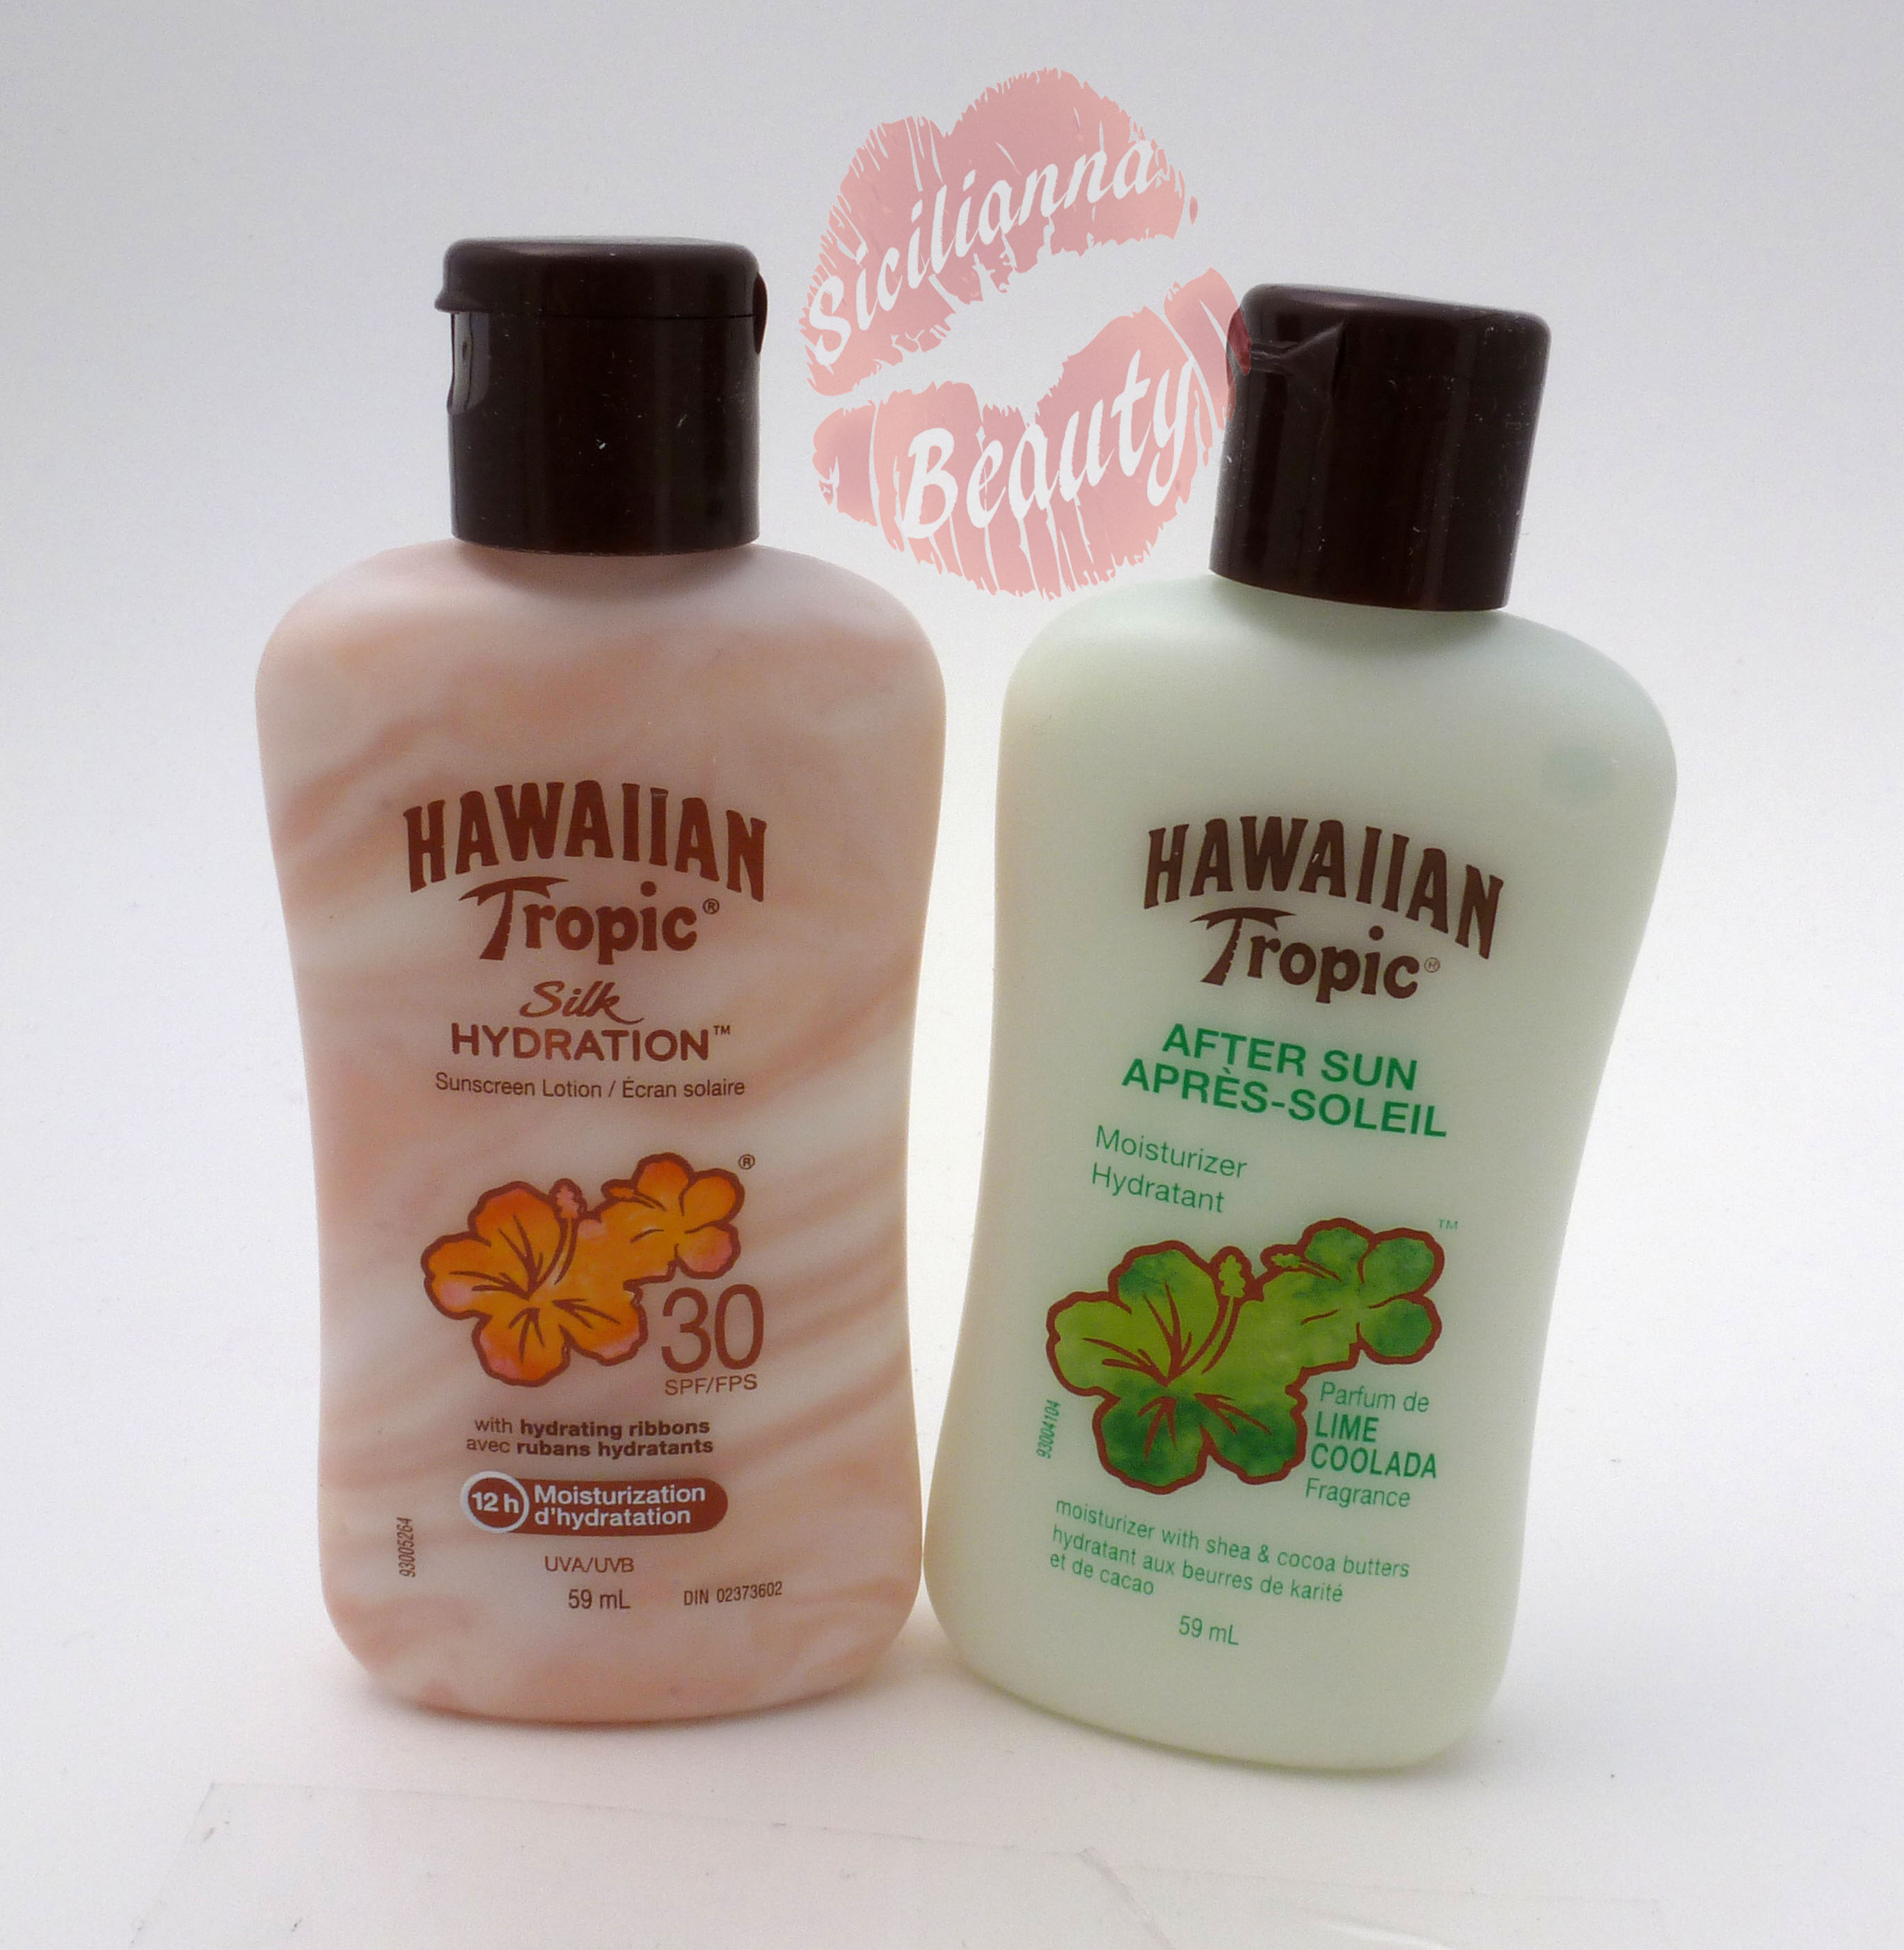 REVIEW: Hawaiian Tropics Silk Hydration Suncreen Lotion SPF30 and After Sun Moisturizer